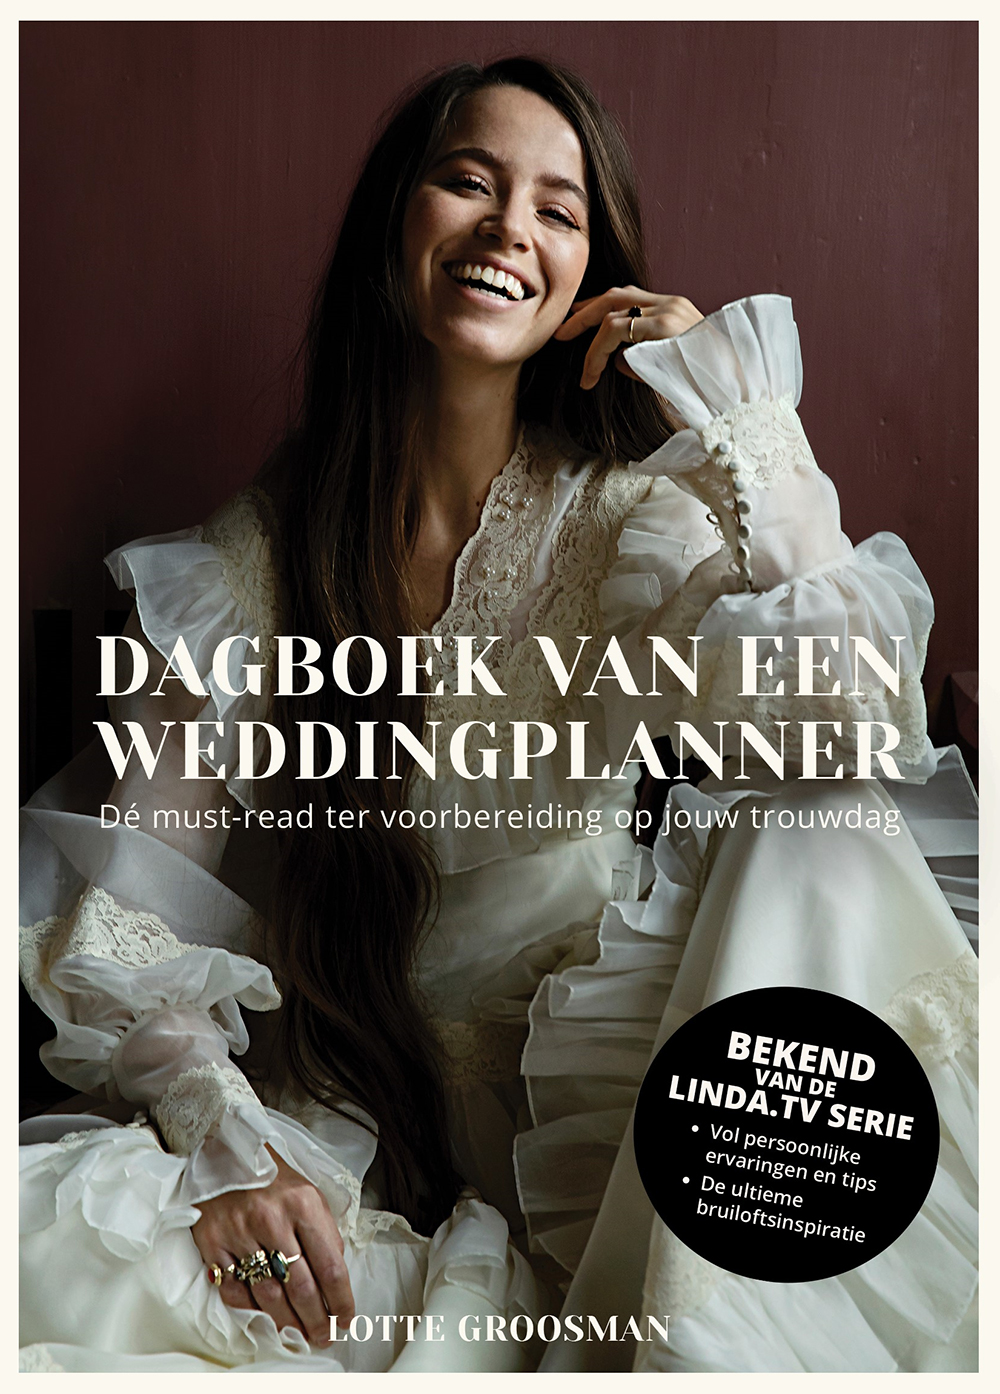 Dagboek weddingplannner winnen